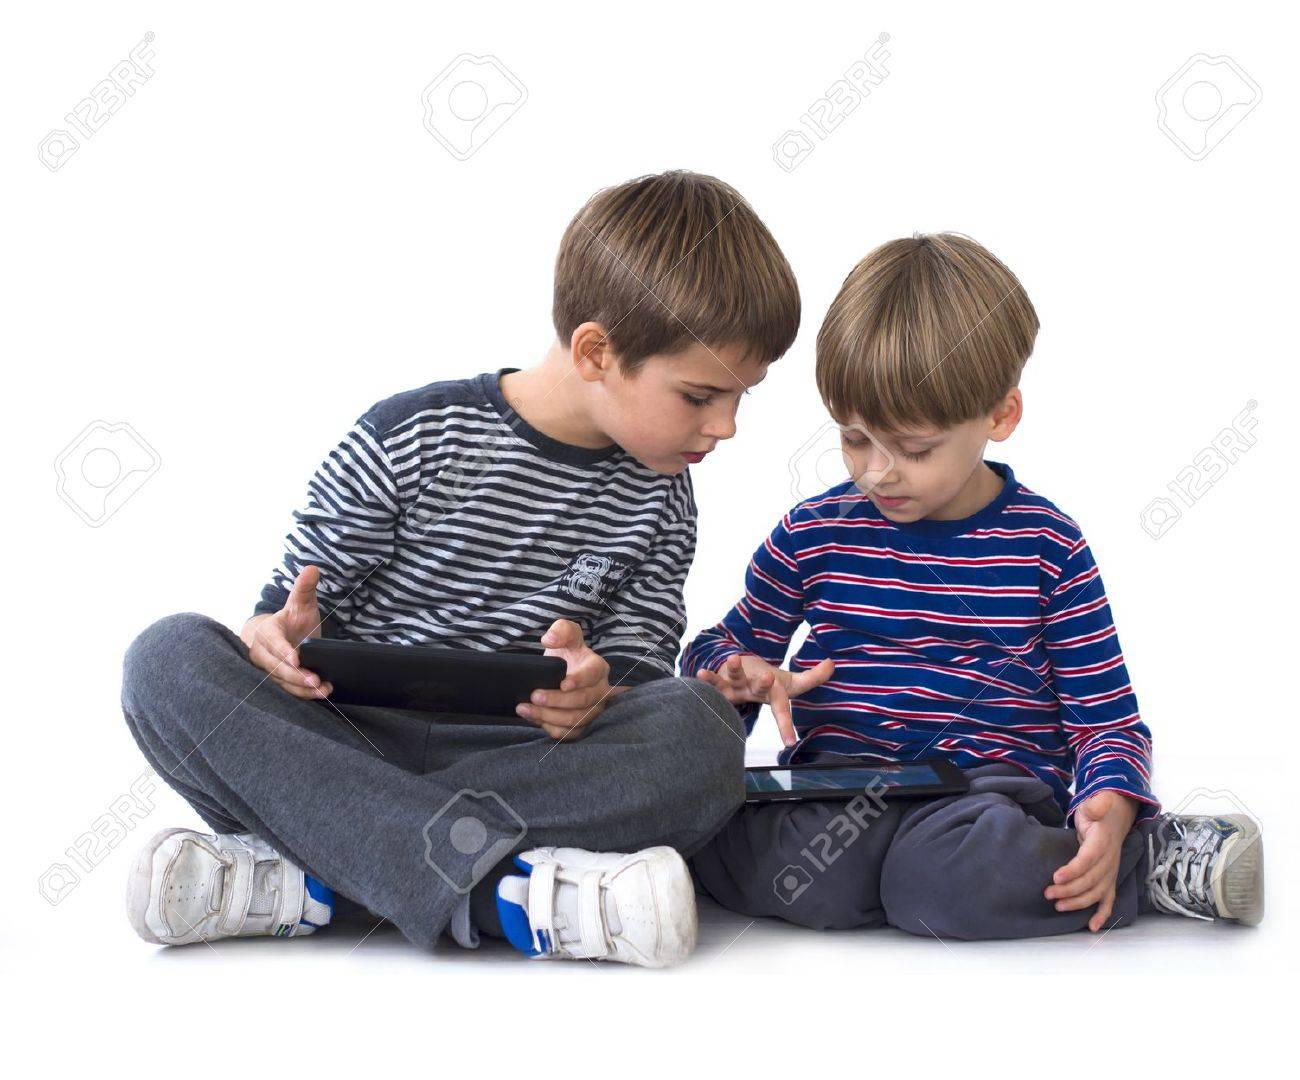 Brothers playing games on computer tablets Stock Photo - 18237371